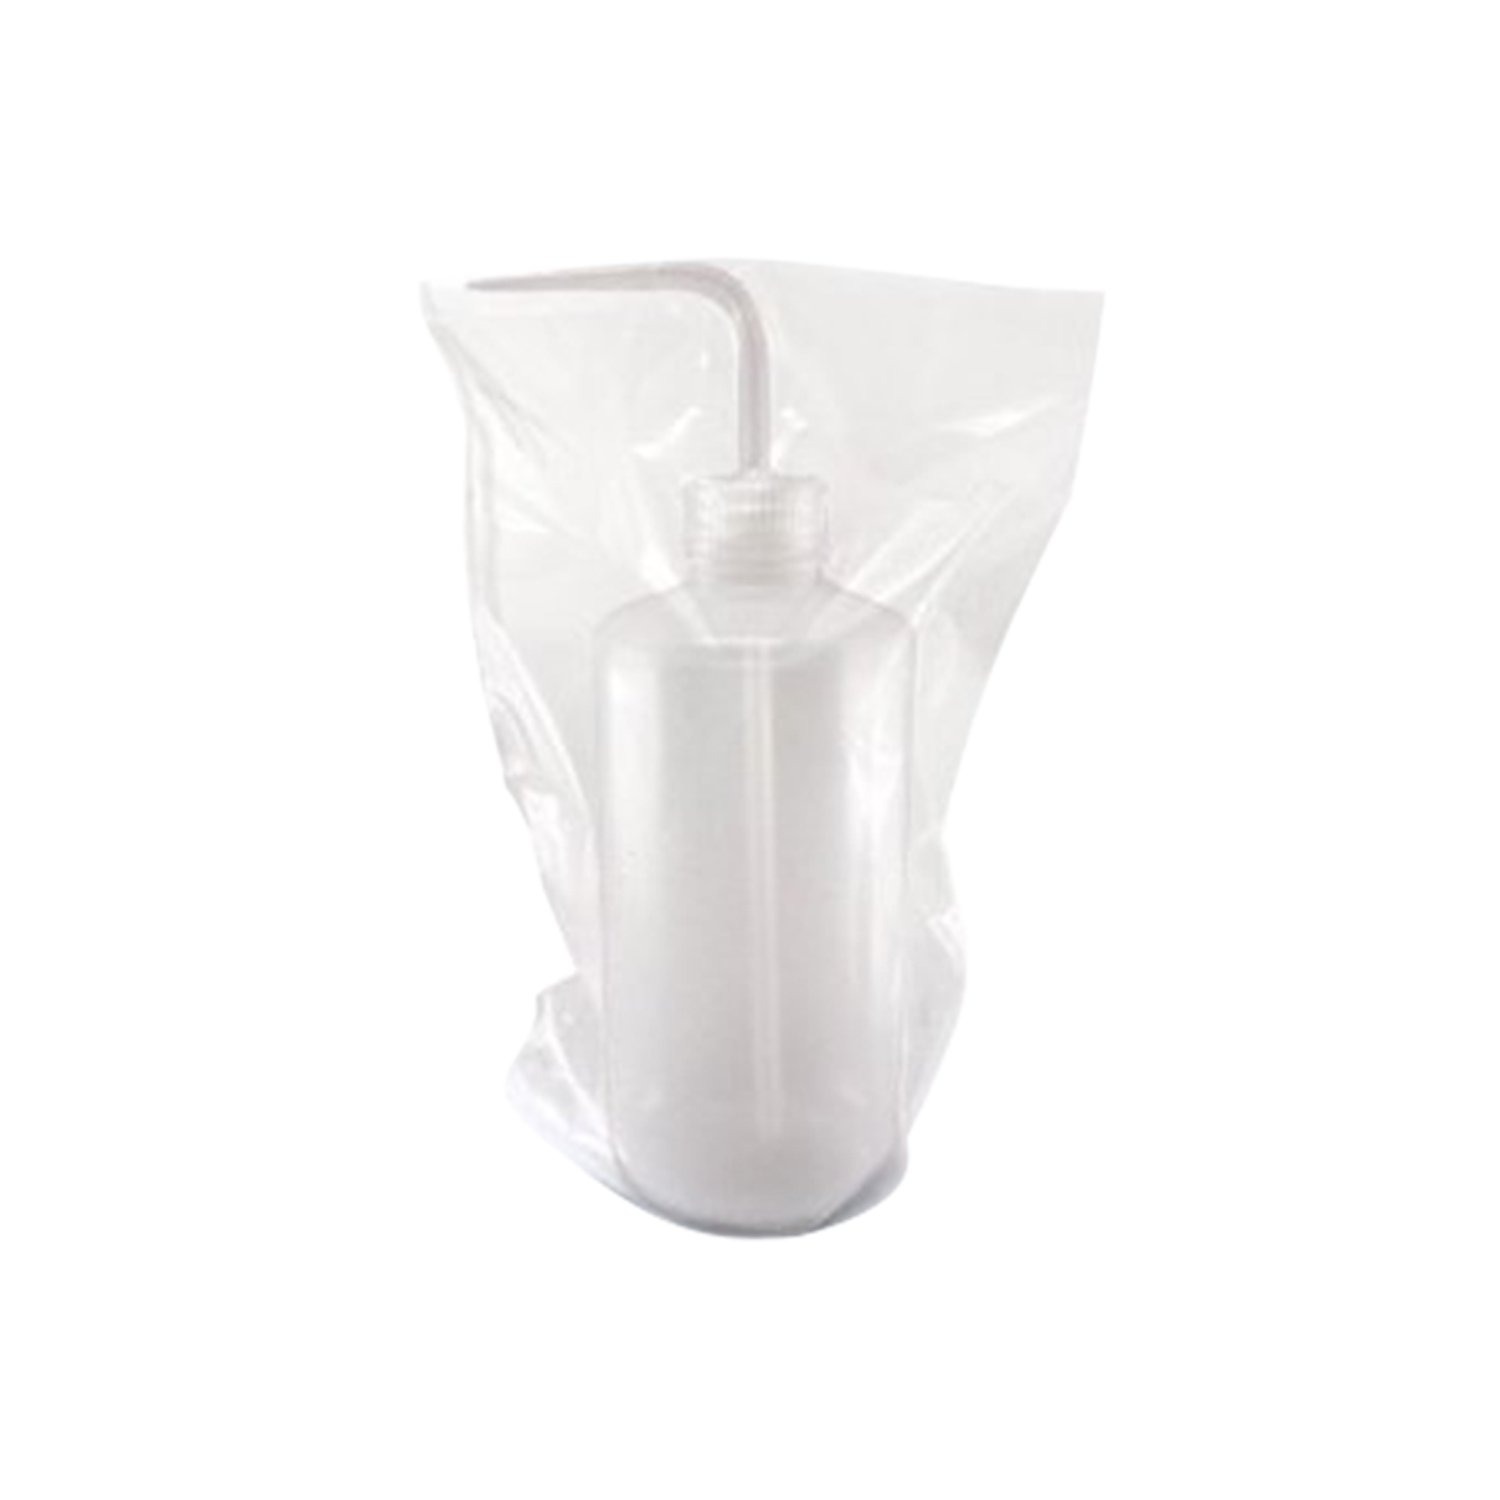 Dynarex Plastic Bottle Protector Covers - For Dental and Tattoo Use - Large - 6'' x 10'' - 500 Count